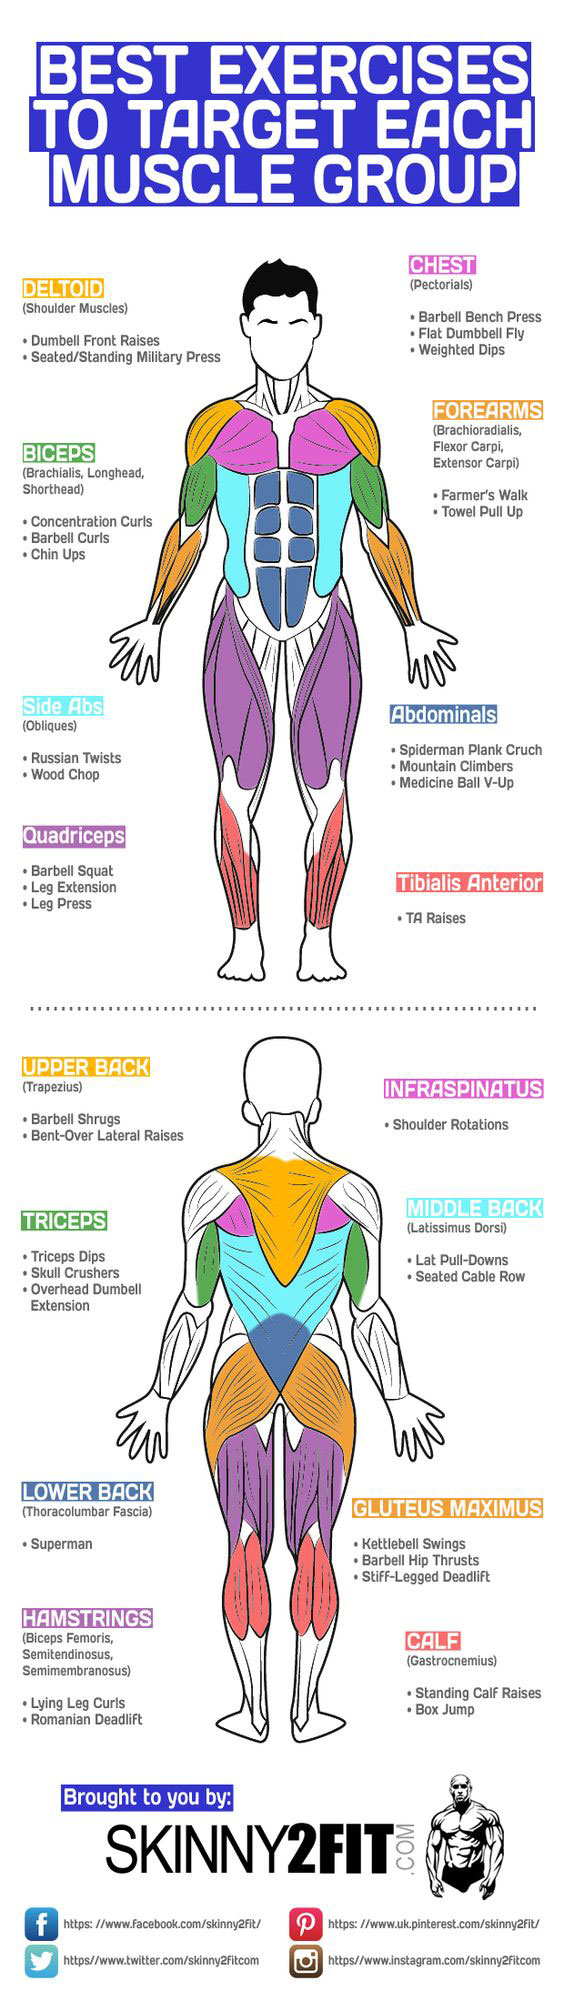 Best-Exercises-To-Target-Each-Muscle-Group